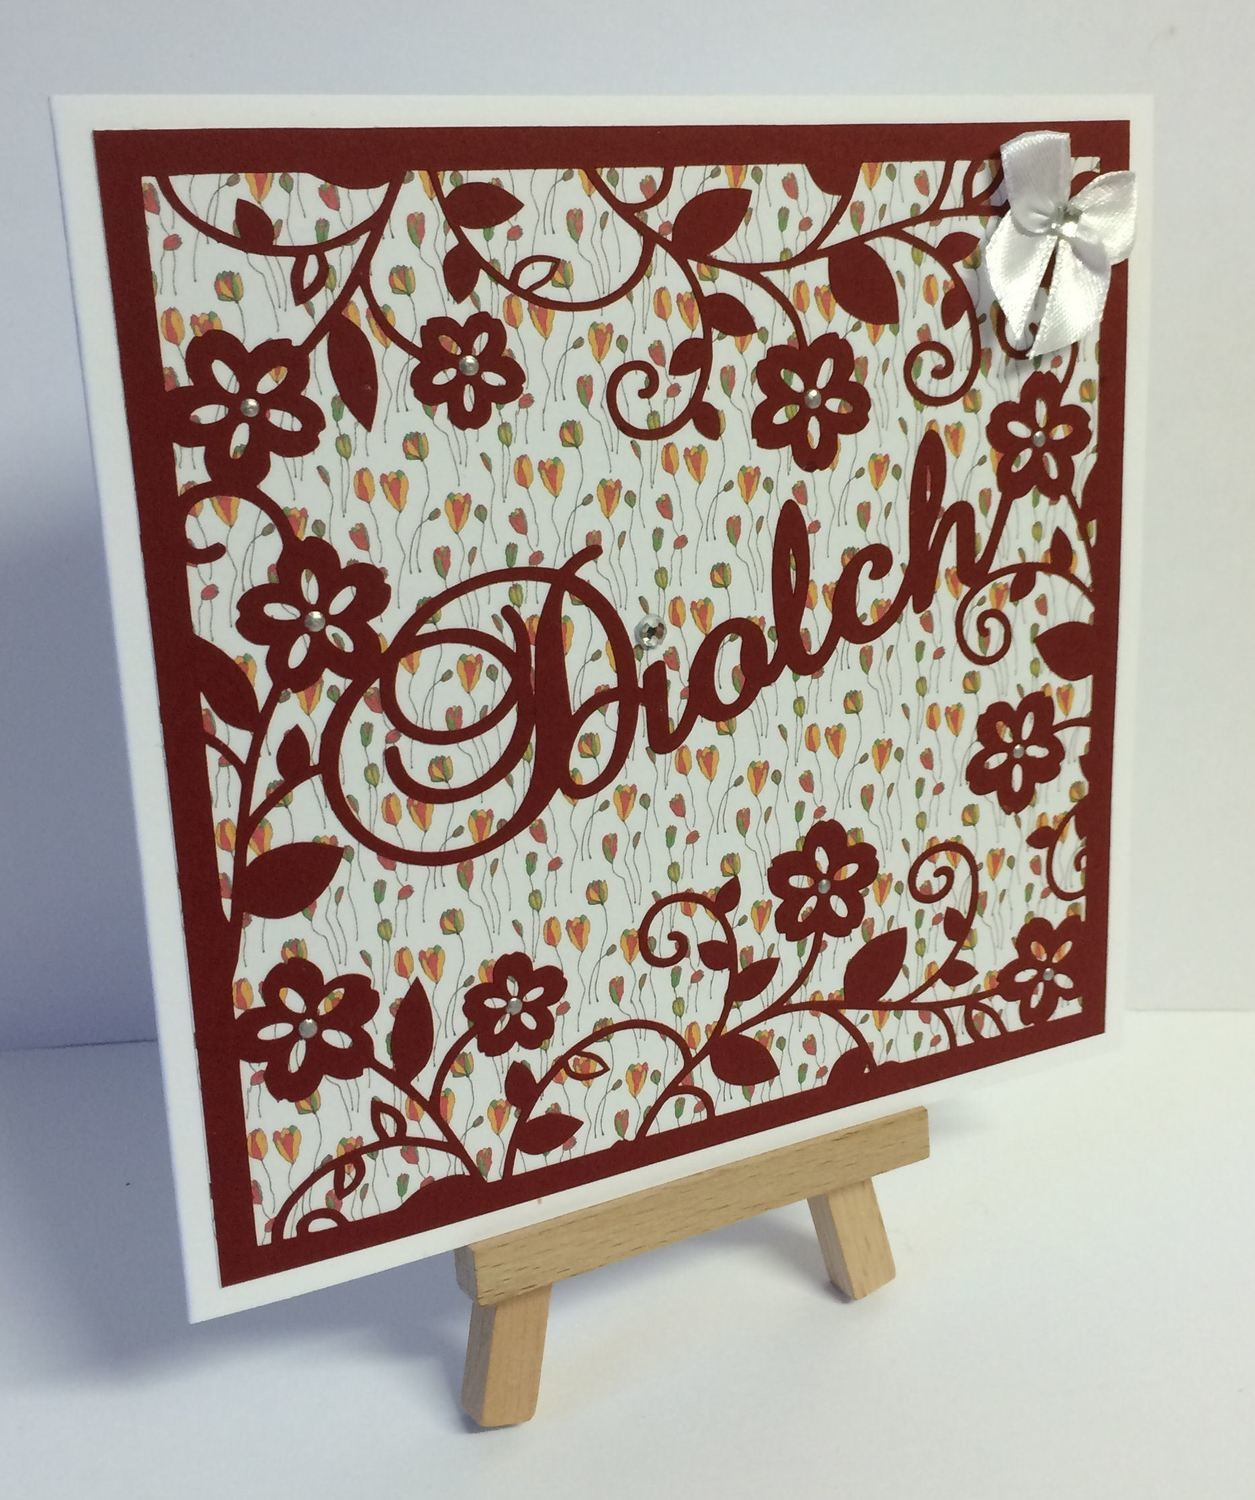 Diolch (thank you) - Welsh / Wales card topper 3 layers.